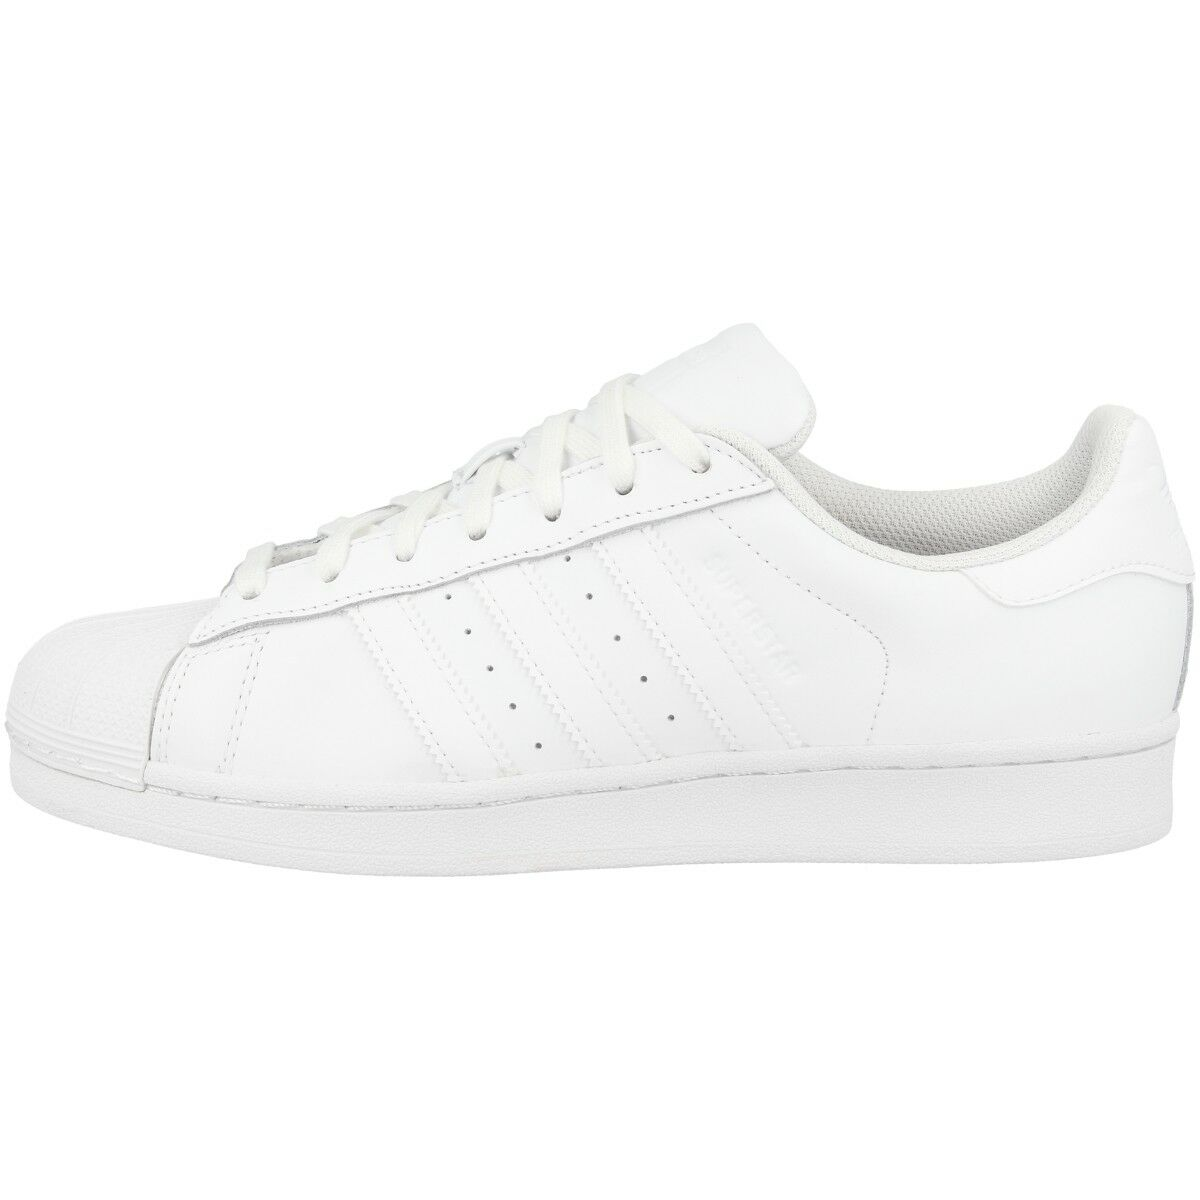 Bdidas Superstar Foundation Schuhe Retro Sneaker white B27136 Samba Spezial